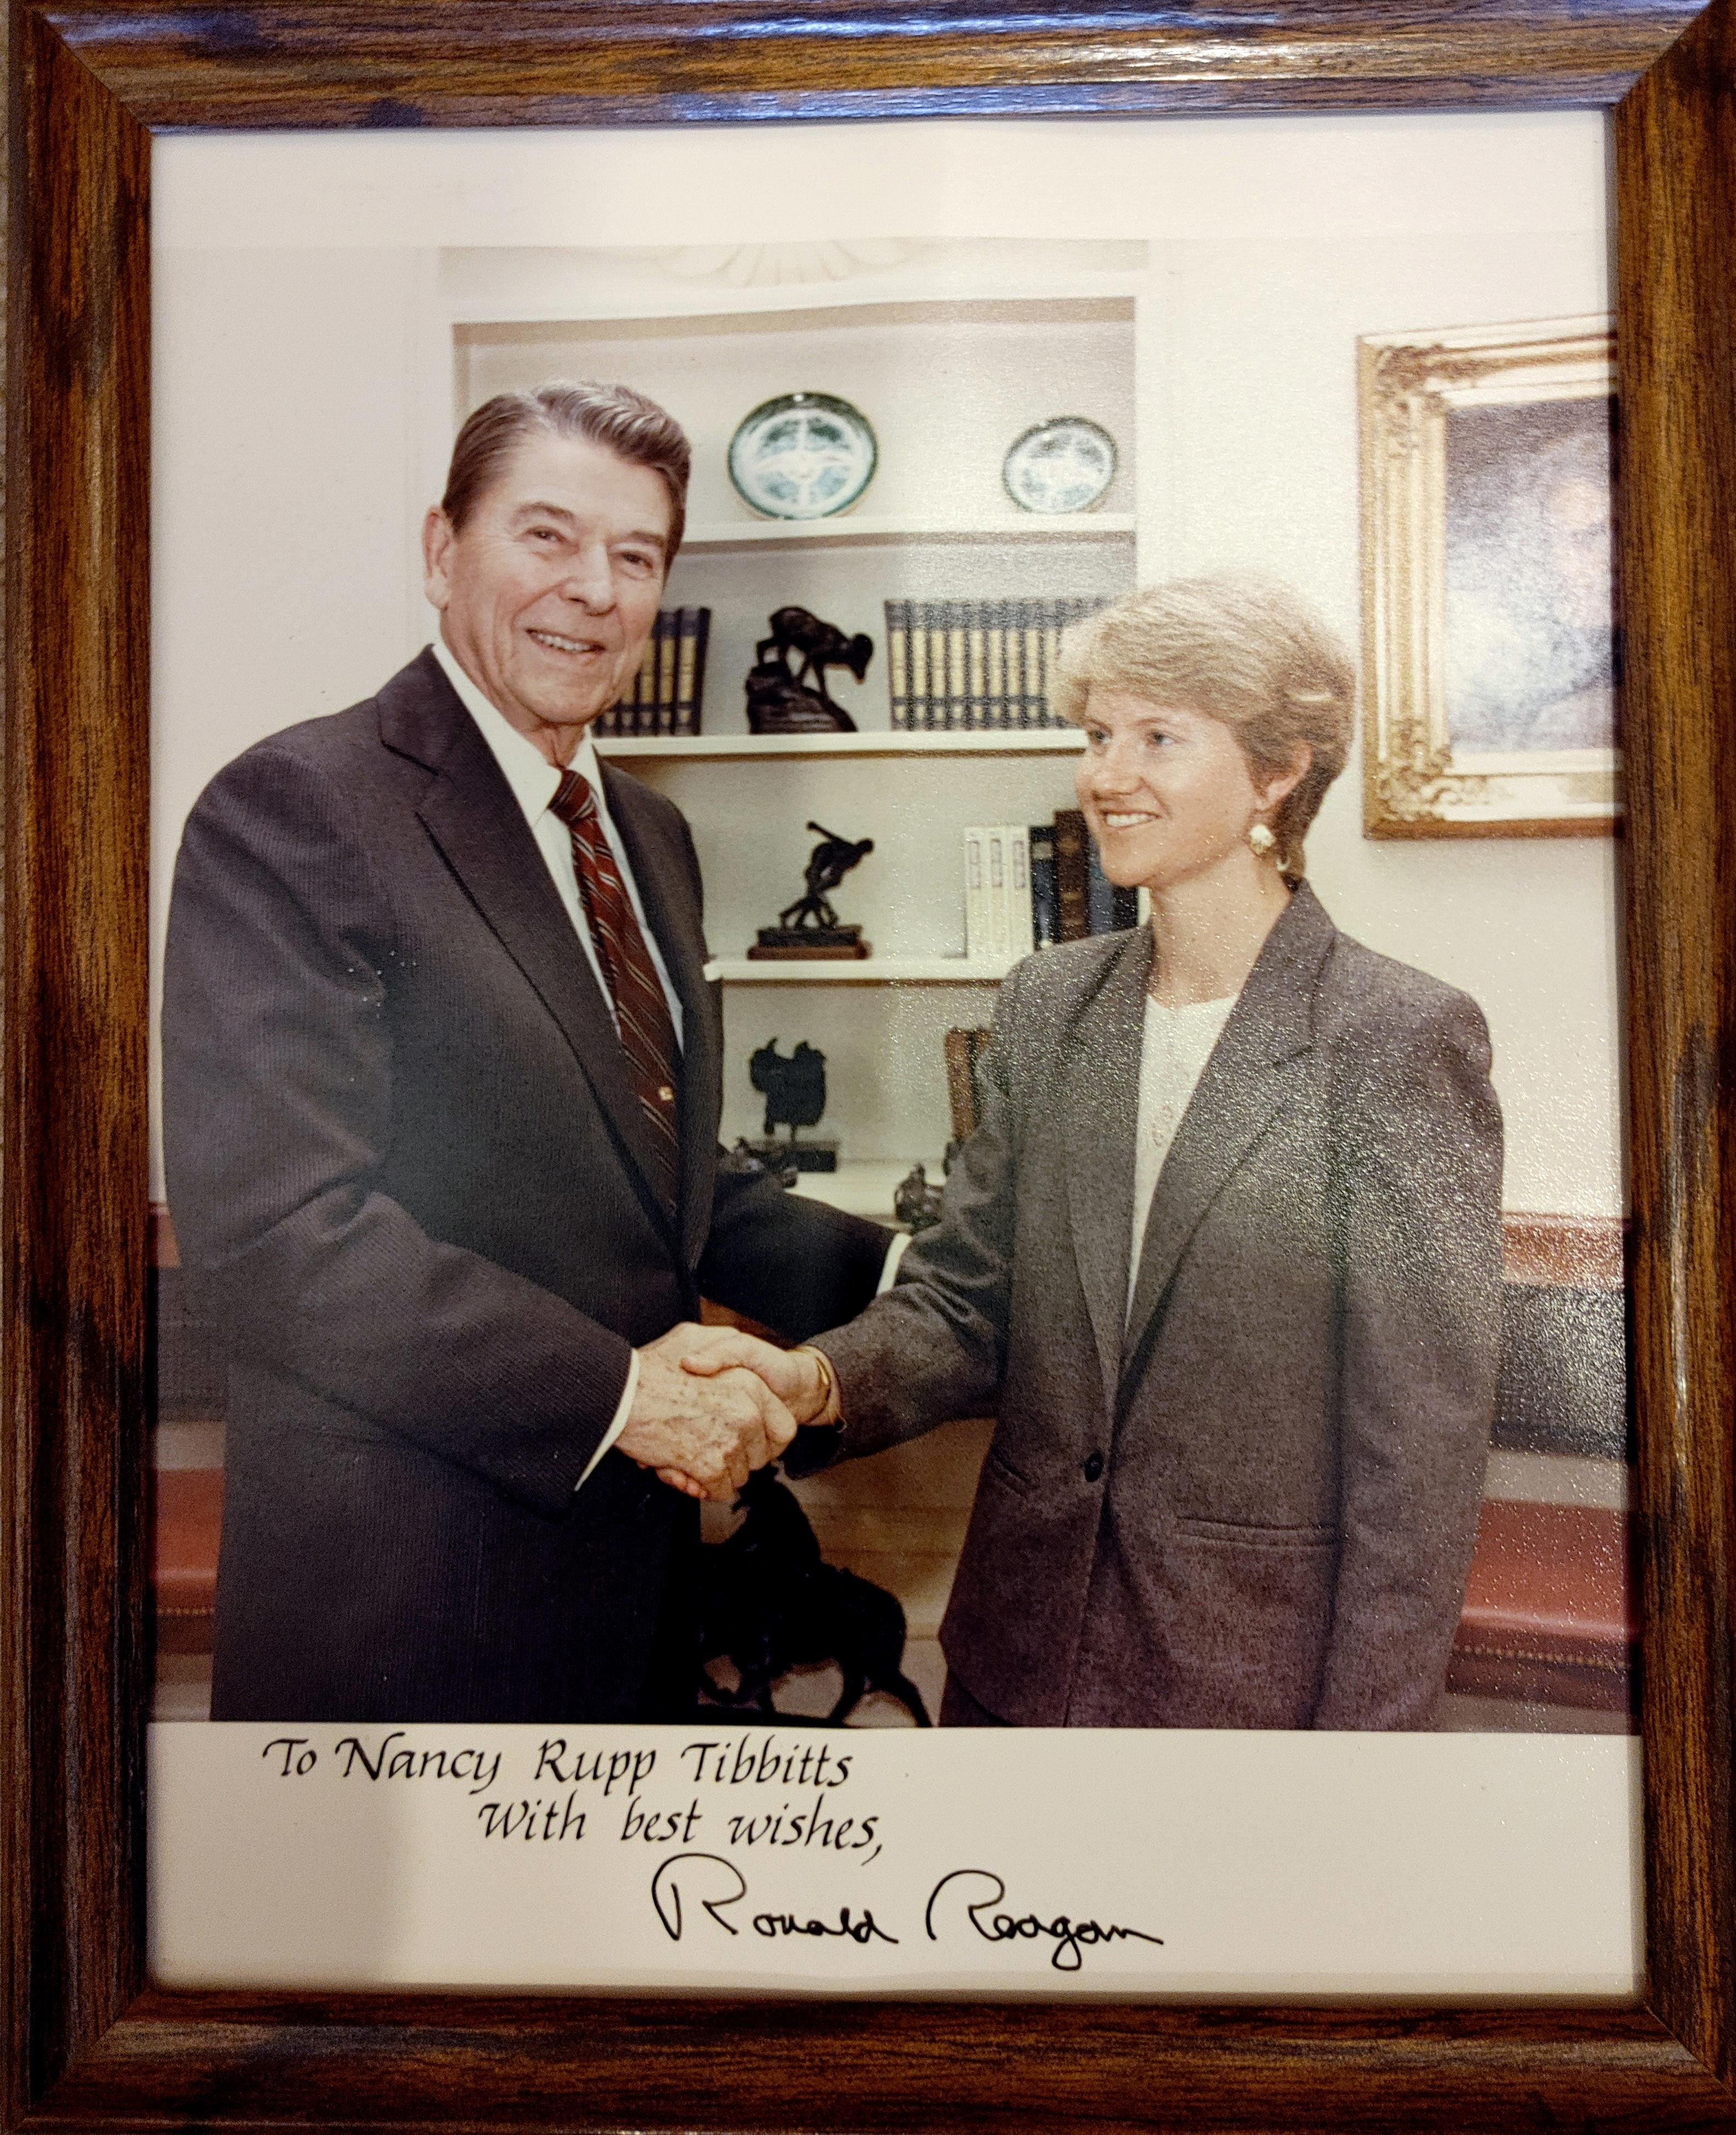 The late President Ronald Reagan with Nancy Rupp Tibbitts.